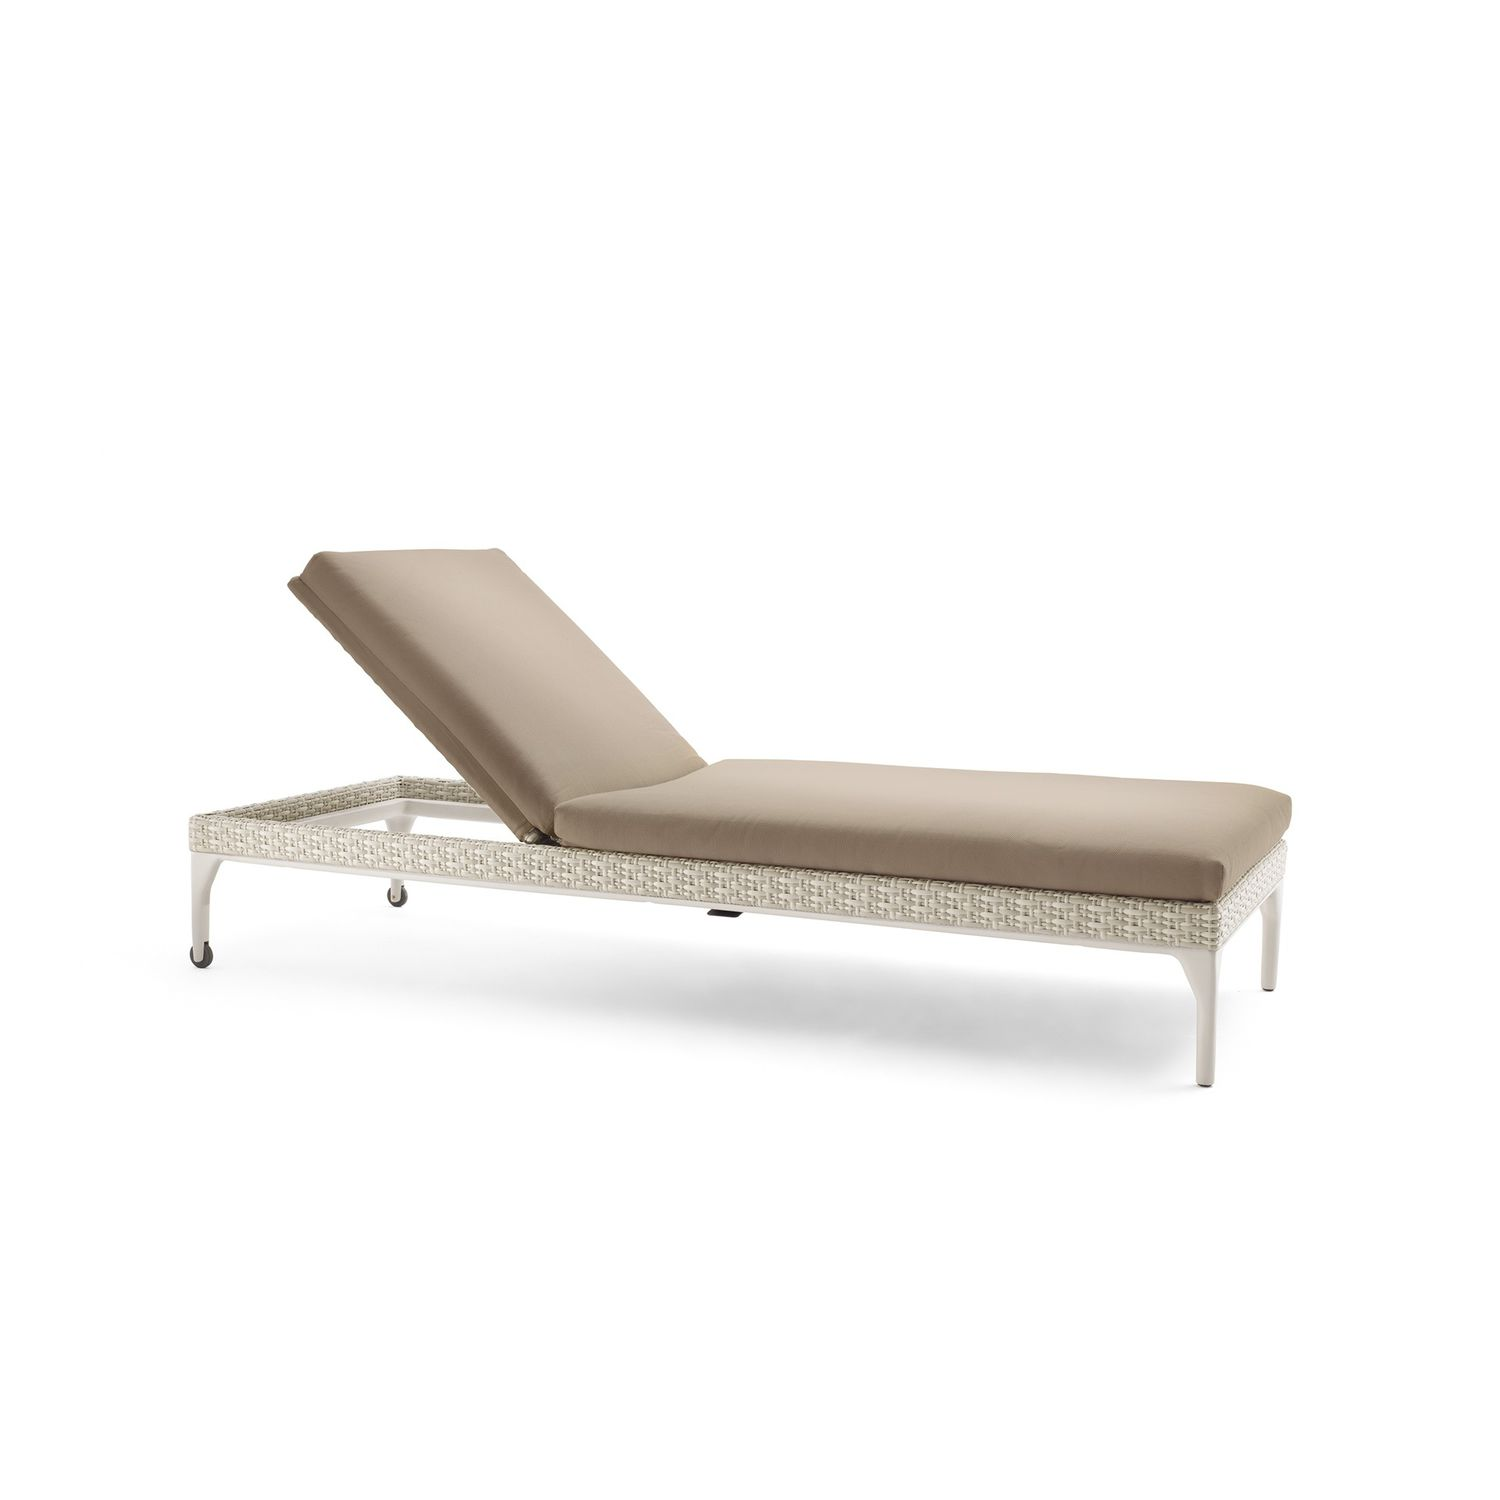 of lovely design cushion replacement classic chaise resin lounge plastic wicker